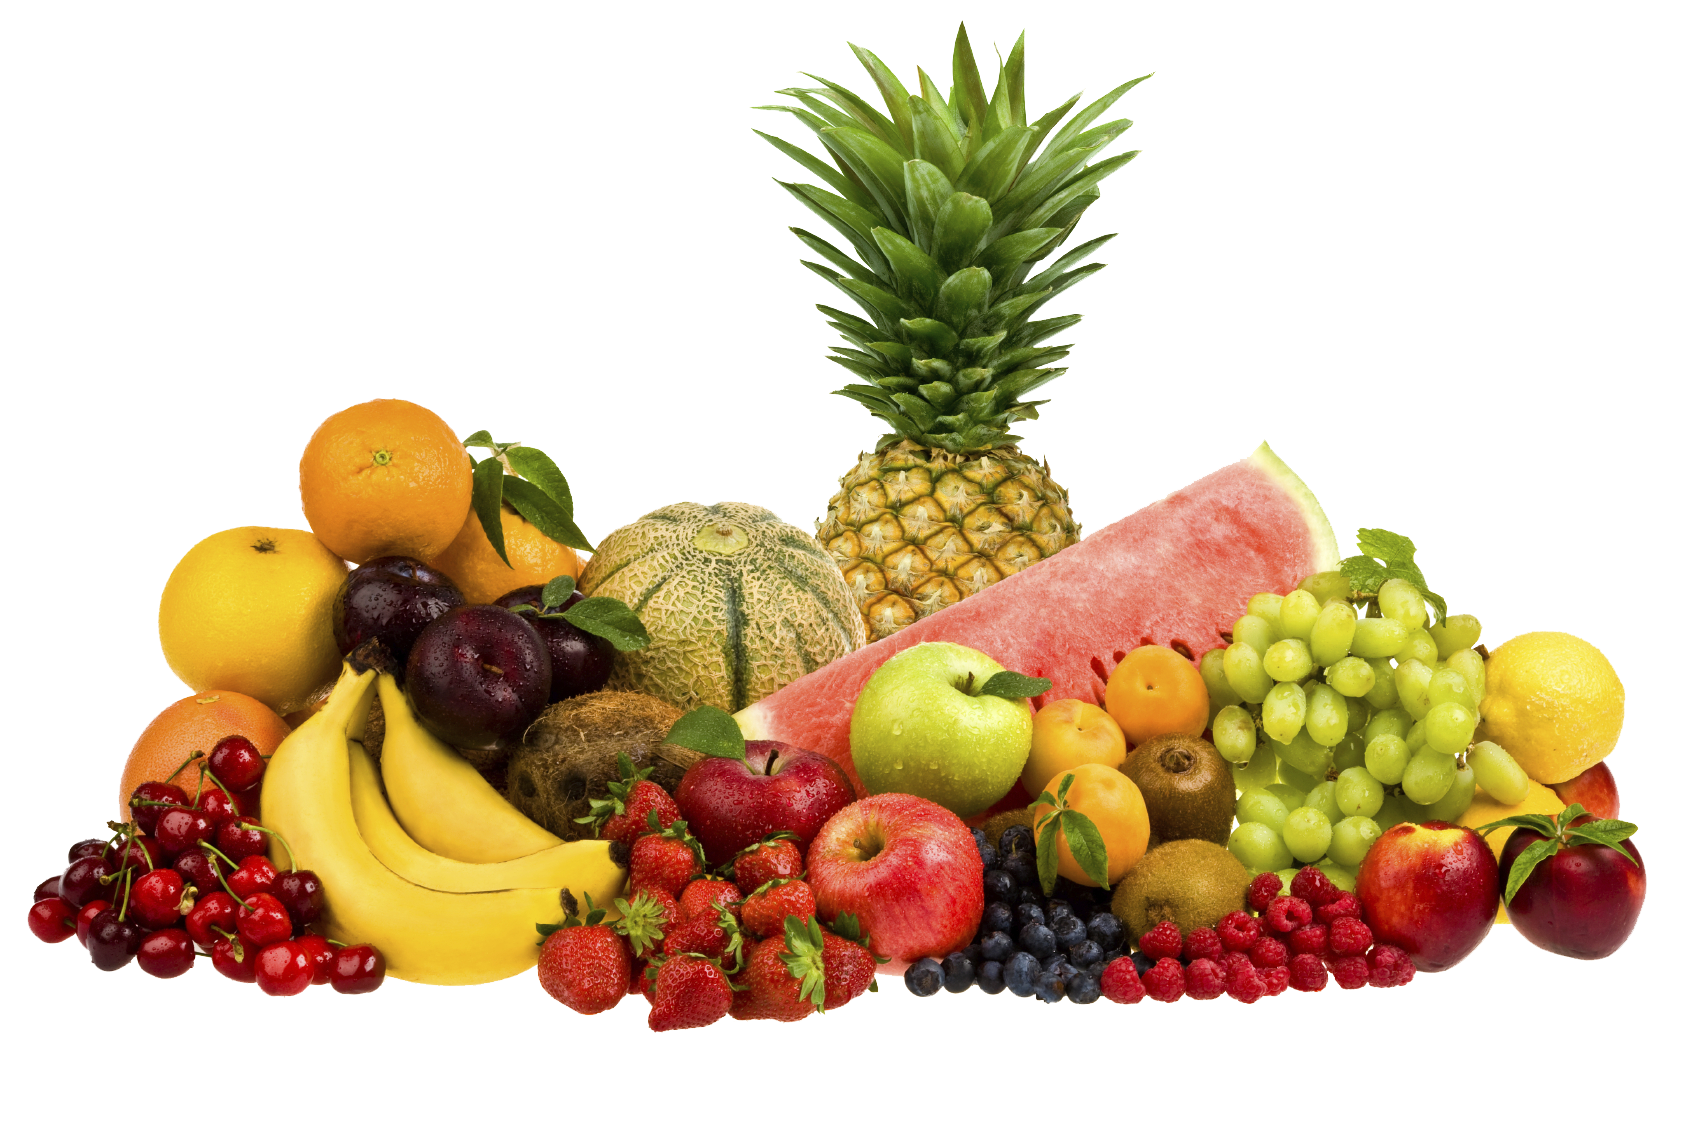 Fruit and vegetables png. Fruits hd transparent images